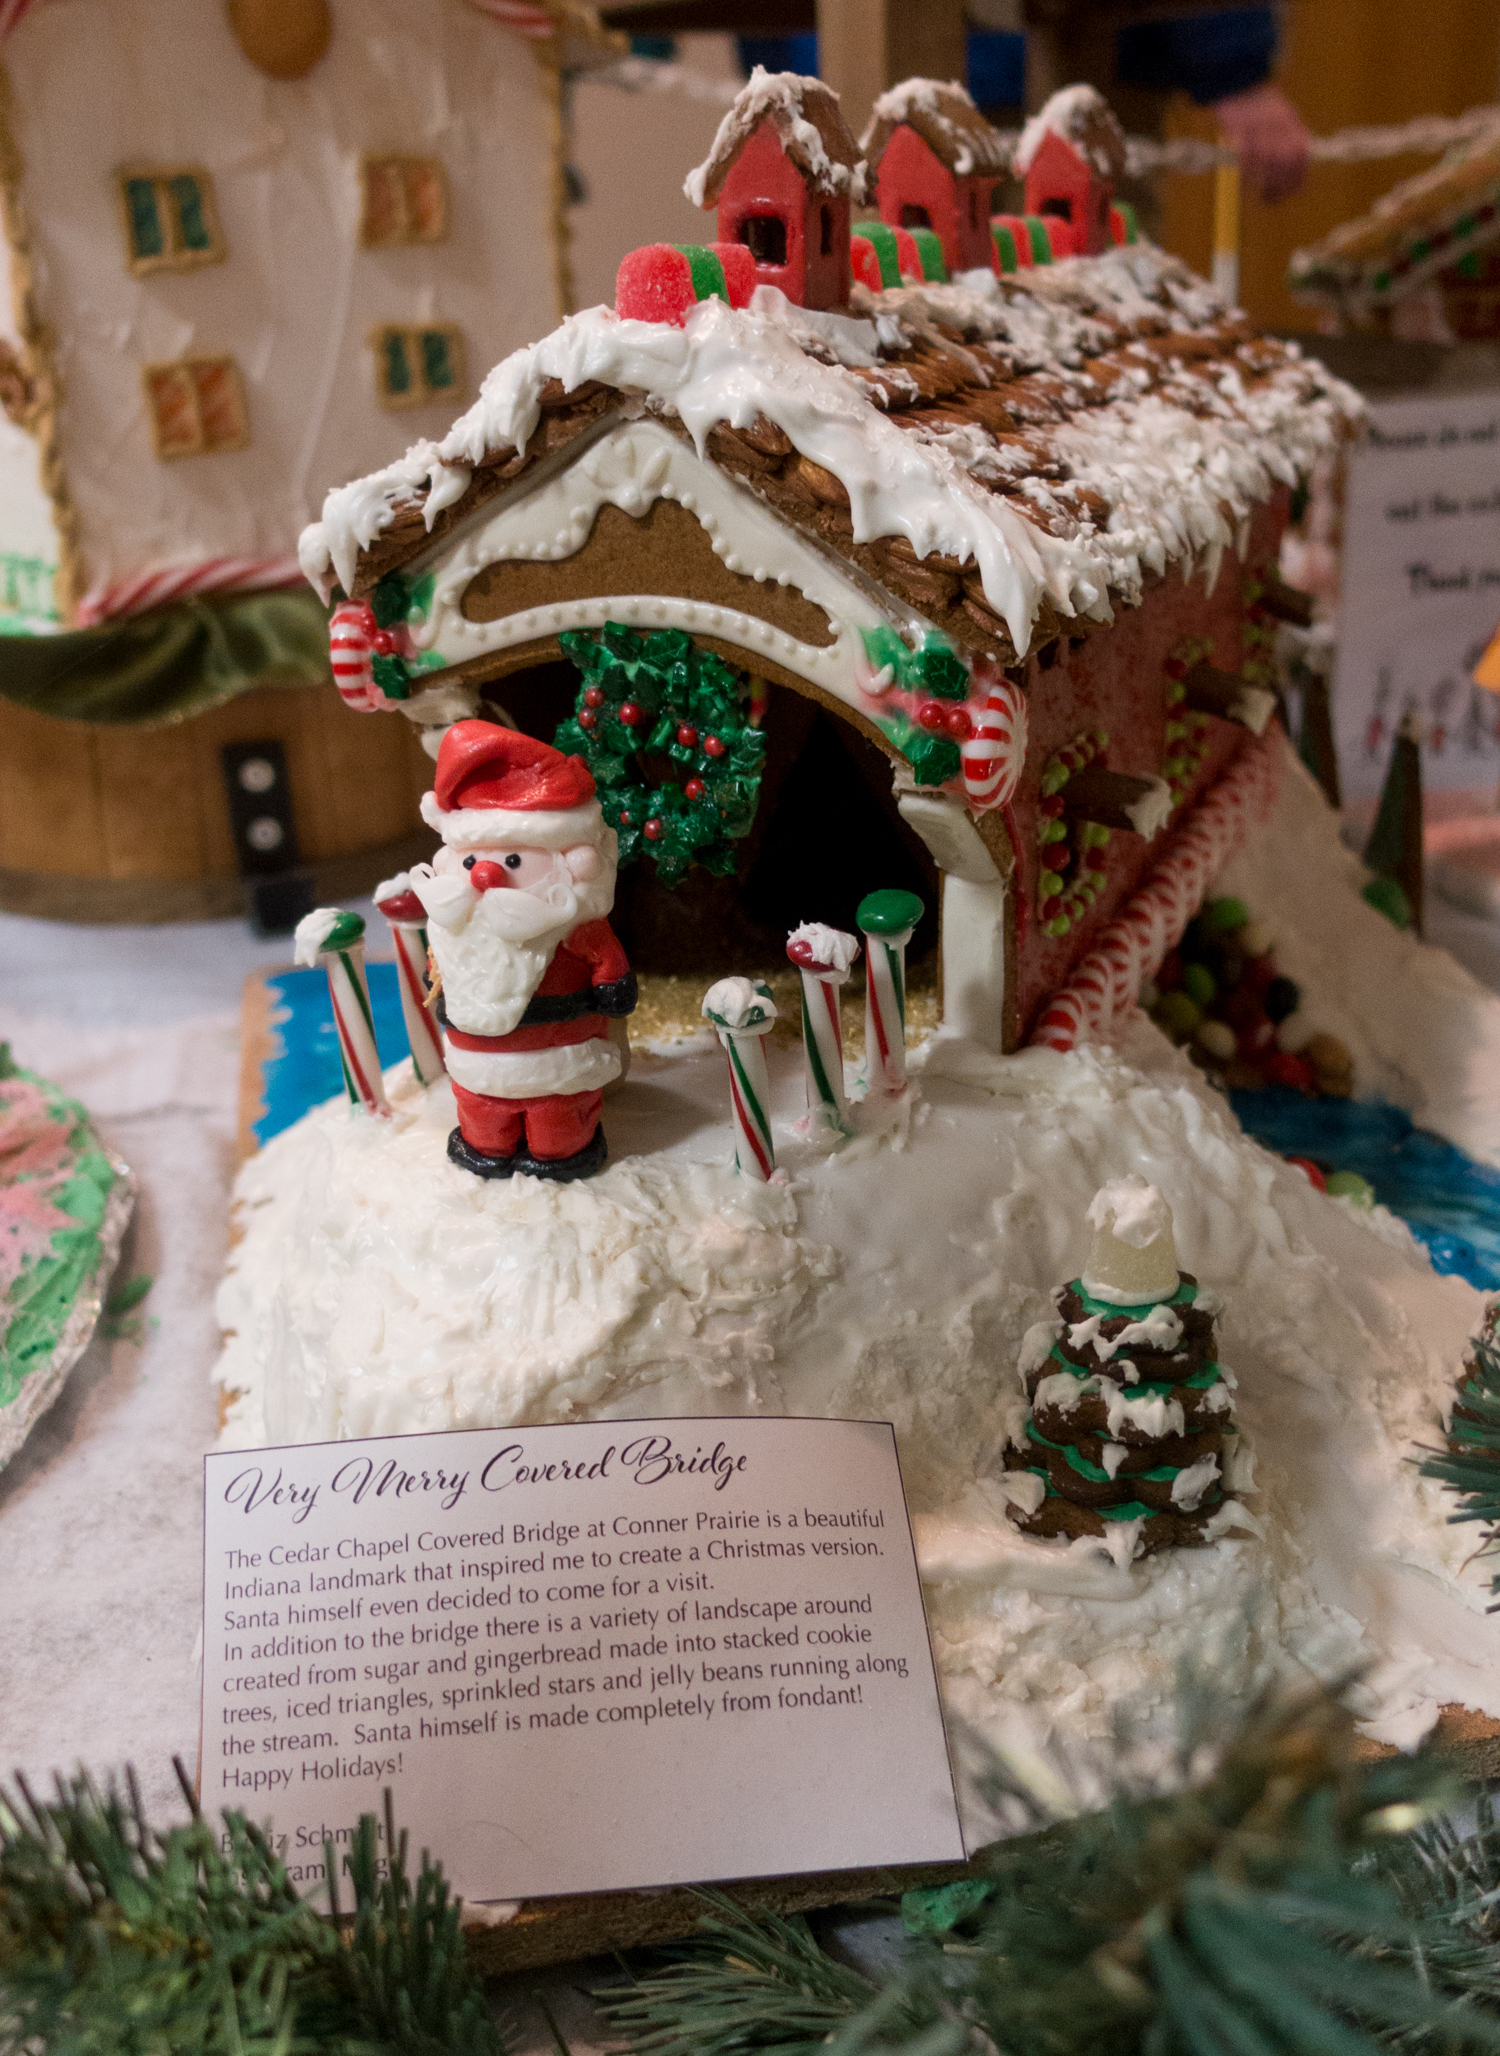 Located inside Connor Prairie, Gingerbread Village celebrates the holiday season by featuring gingerbread creations made by talented bakers of all ages.